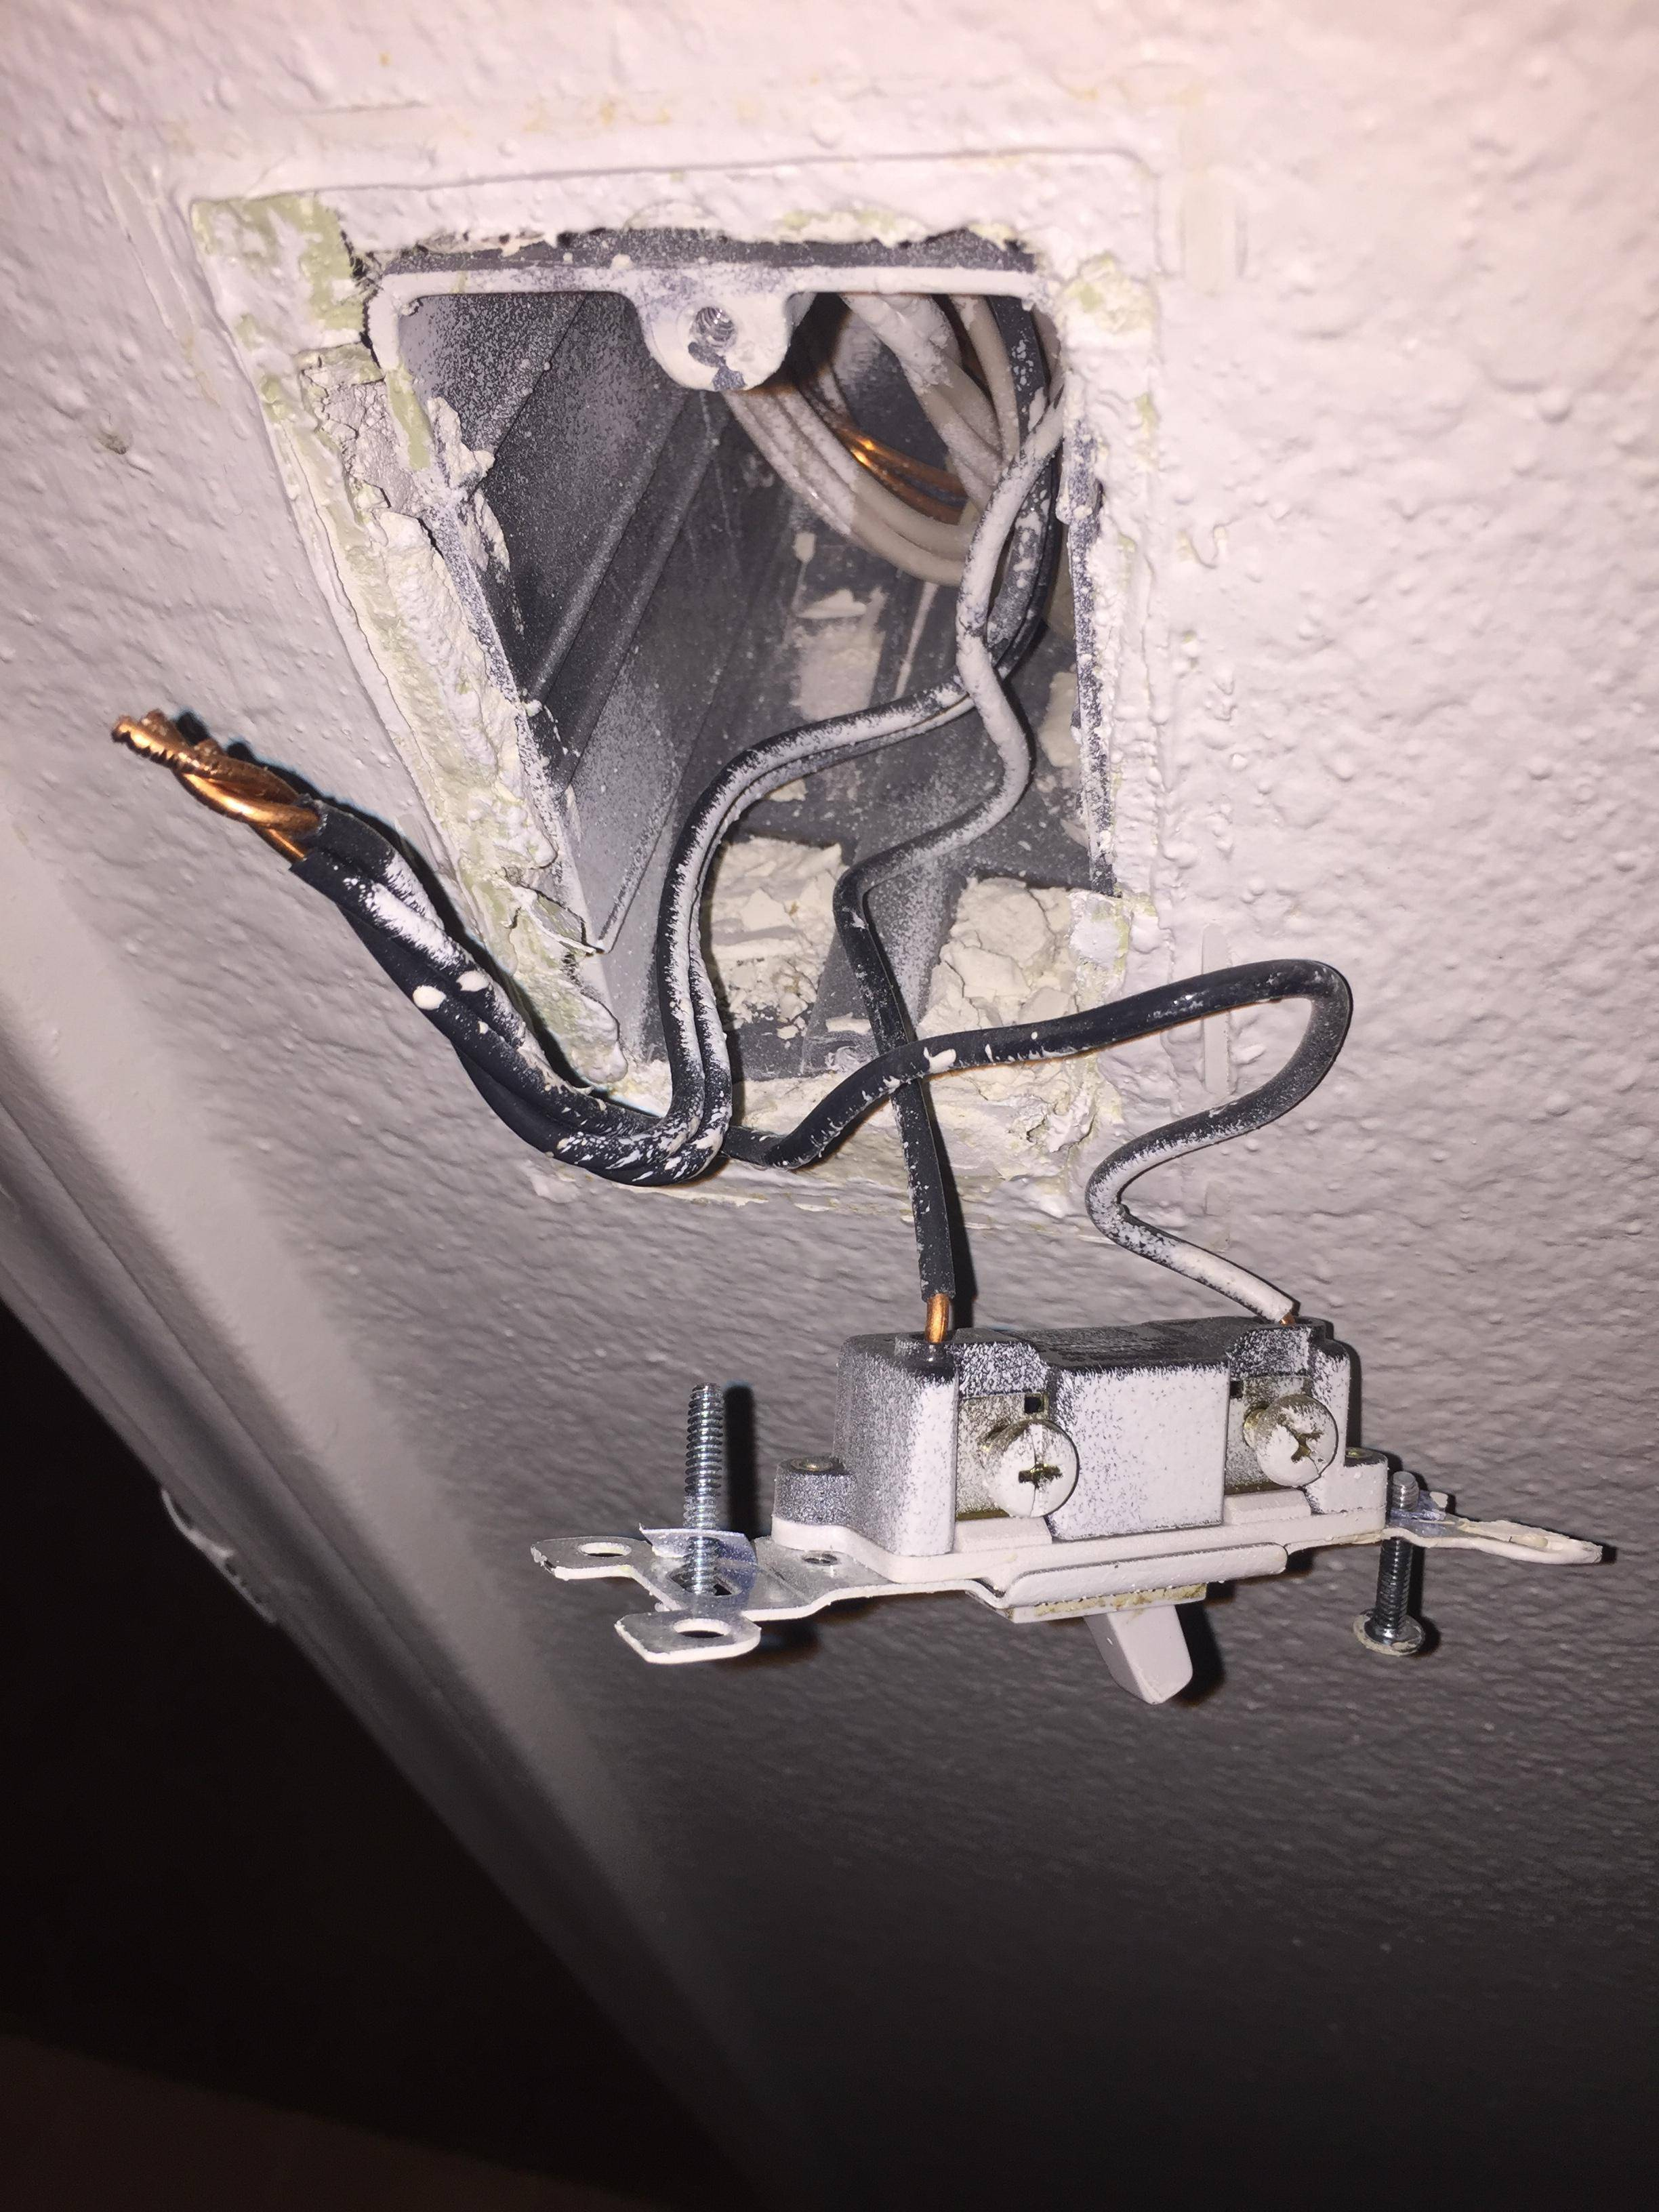 Wiring Bathroom Fan And Light Together